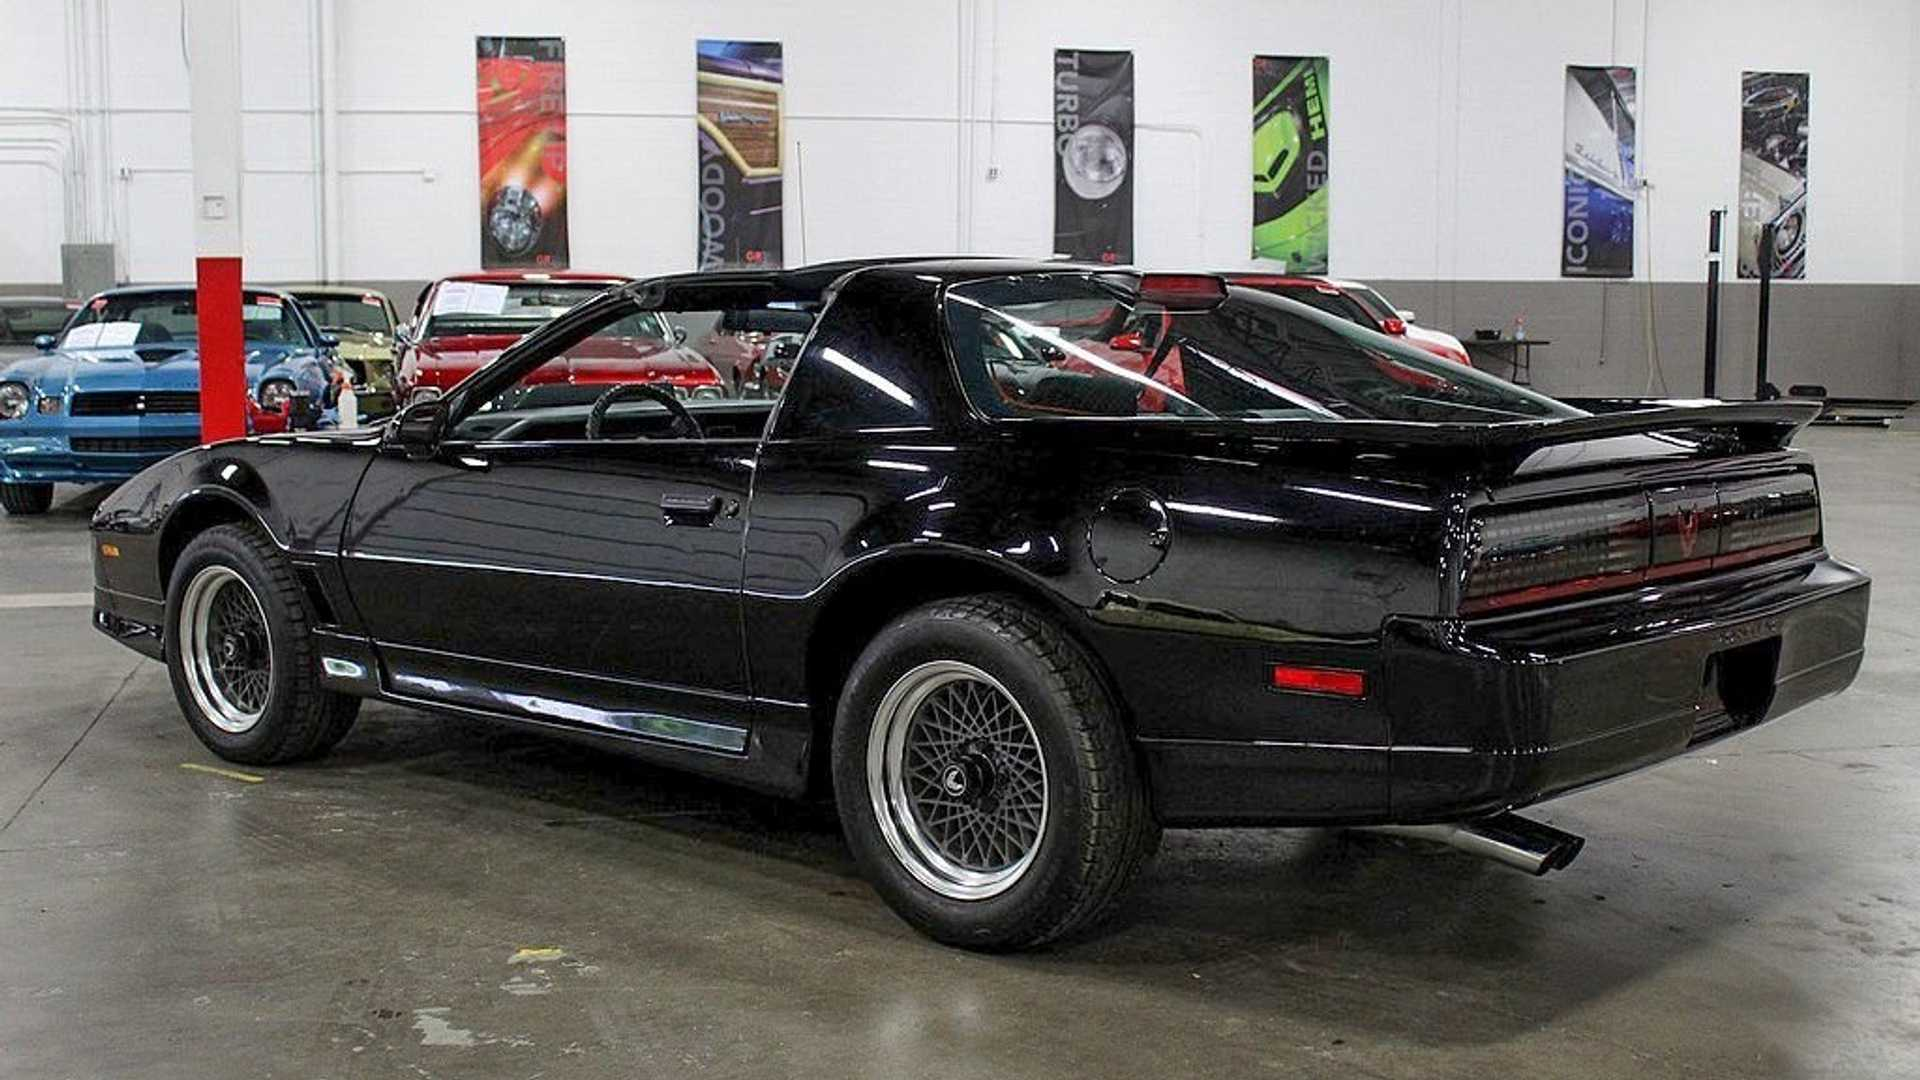 They Call This 1986 Pontiac Trans Am The Night Rider